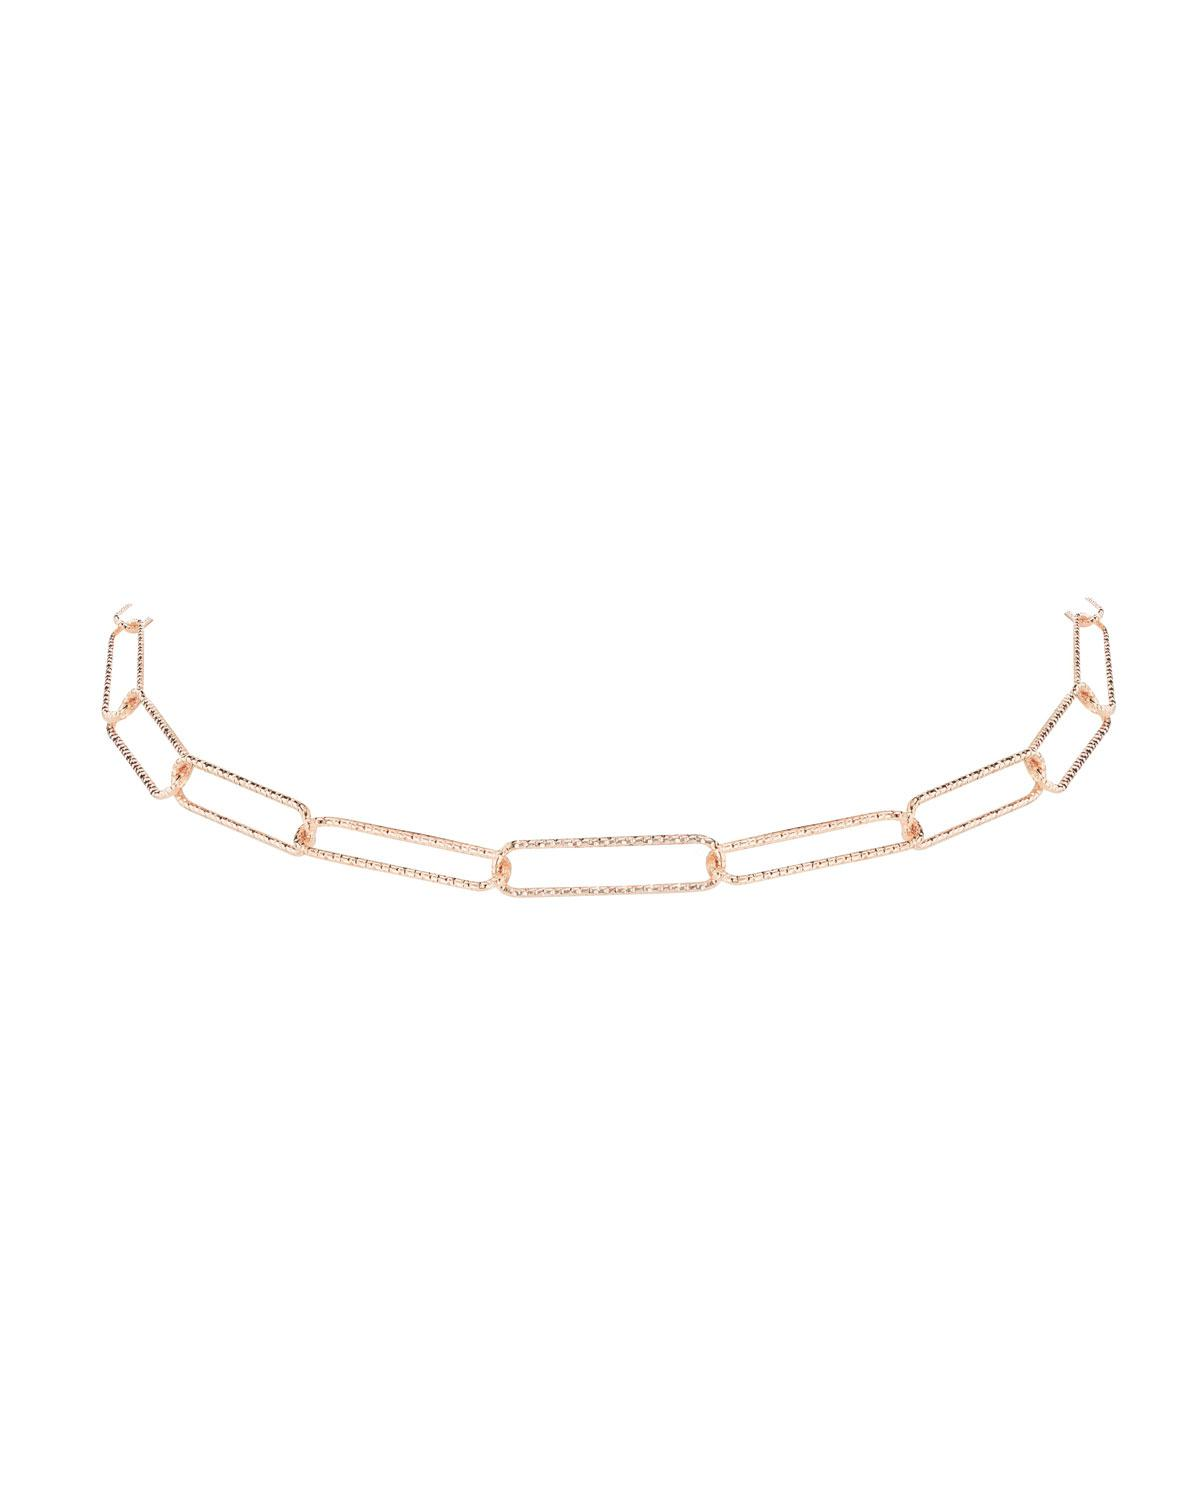 Vita Fede Marianne Link Necklace